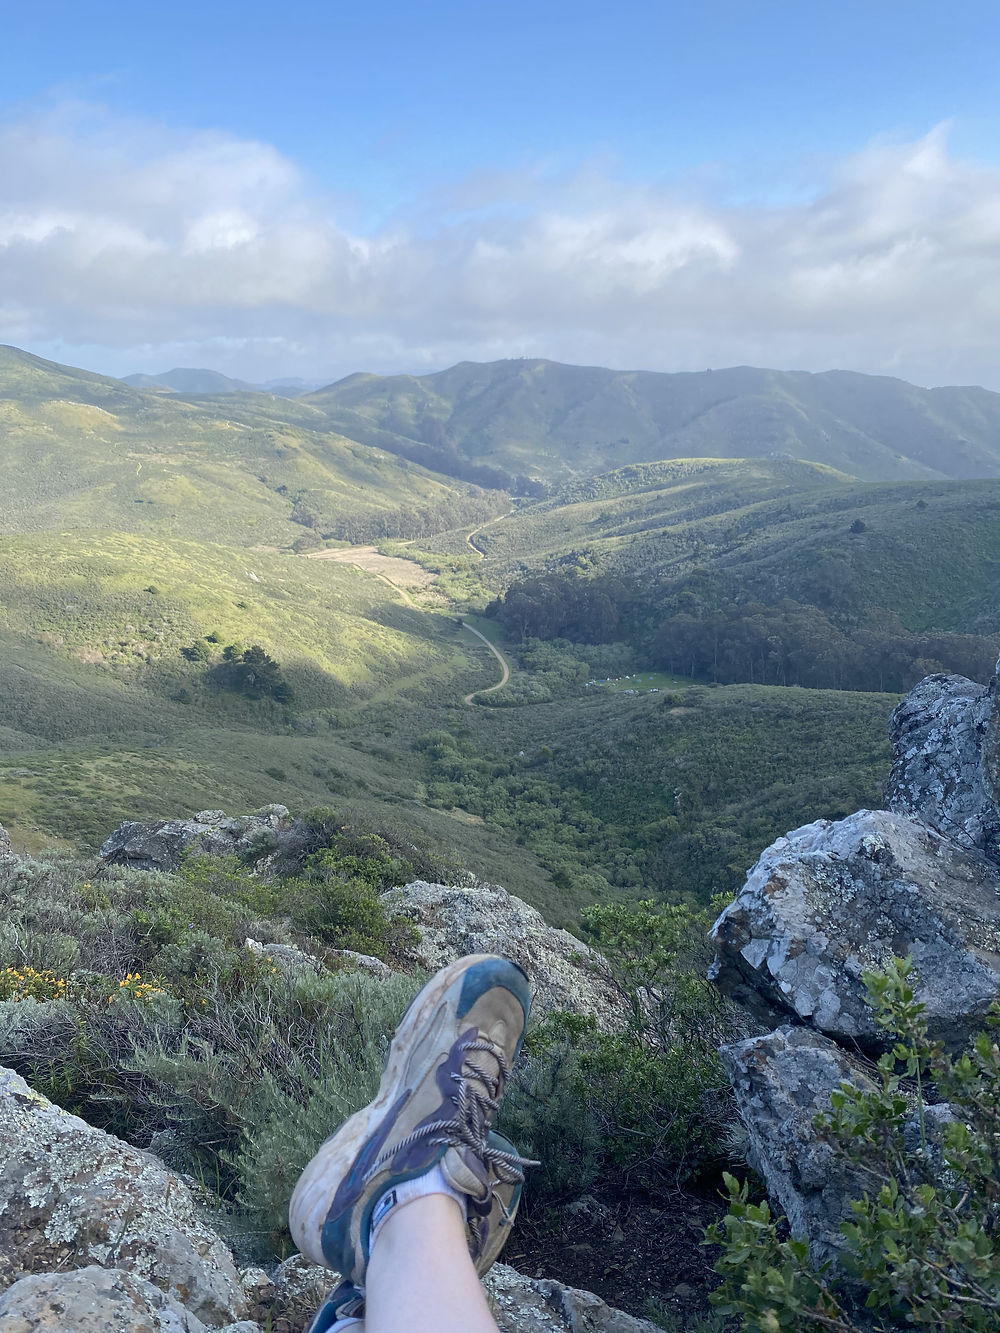 An incredible view of a trail running through the Marin Headlands